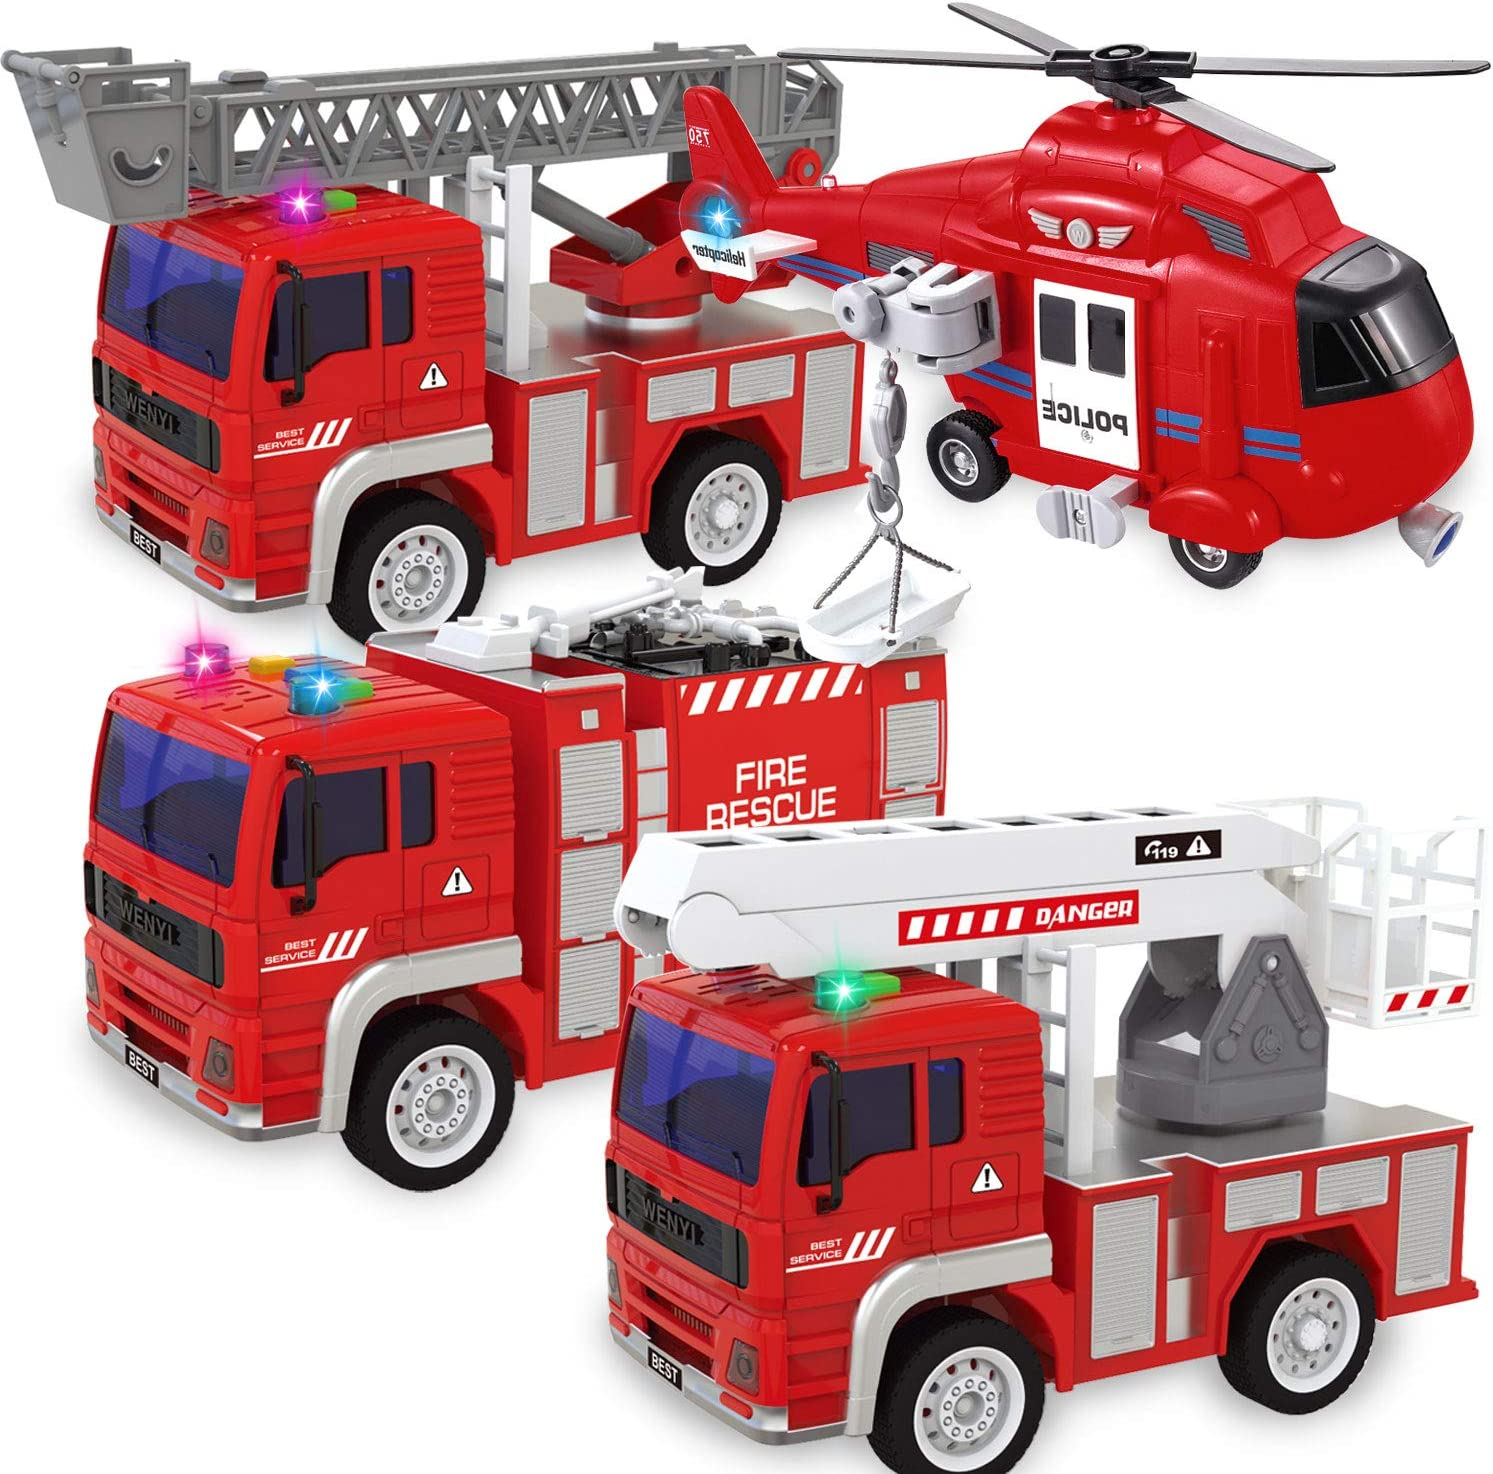 Tcvents 4 El Paso Mall Pack City Fire Trucks Kids Car Powered f Toys Friction Outstanding